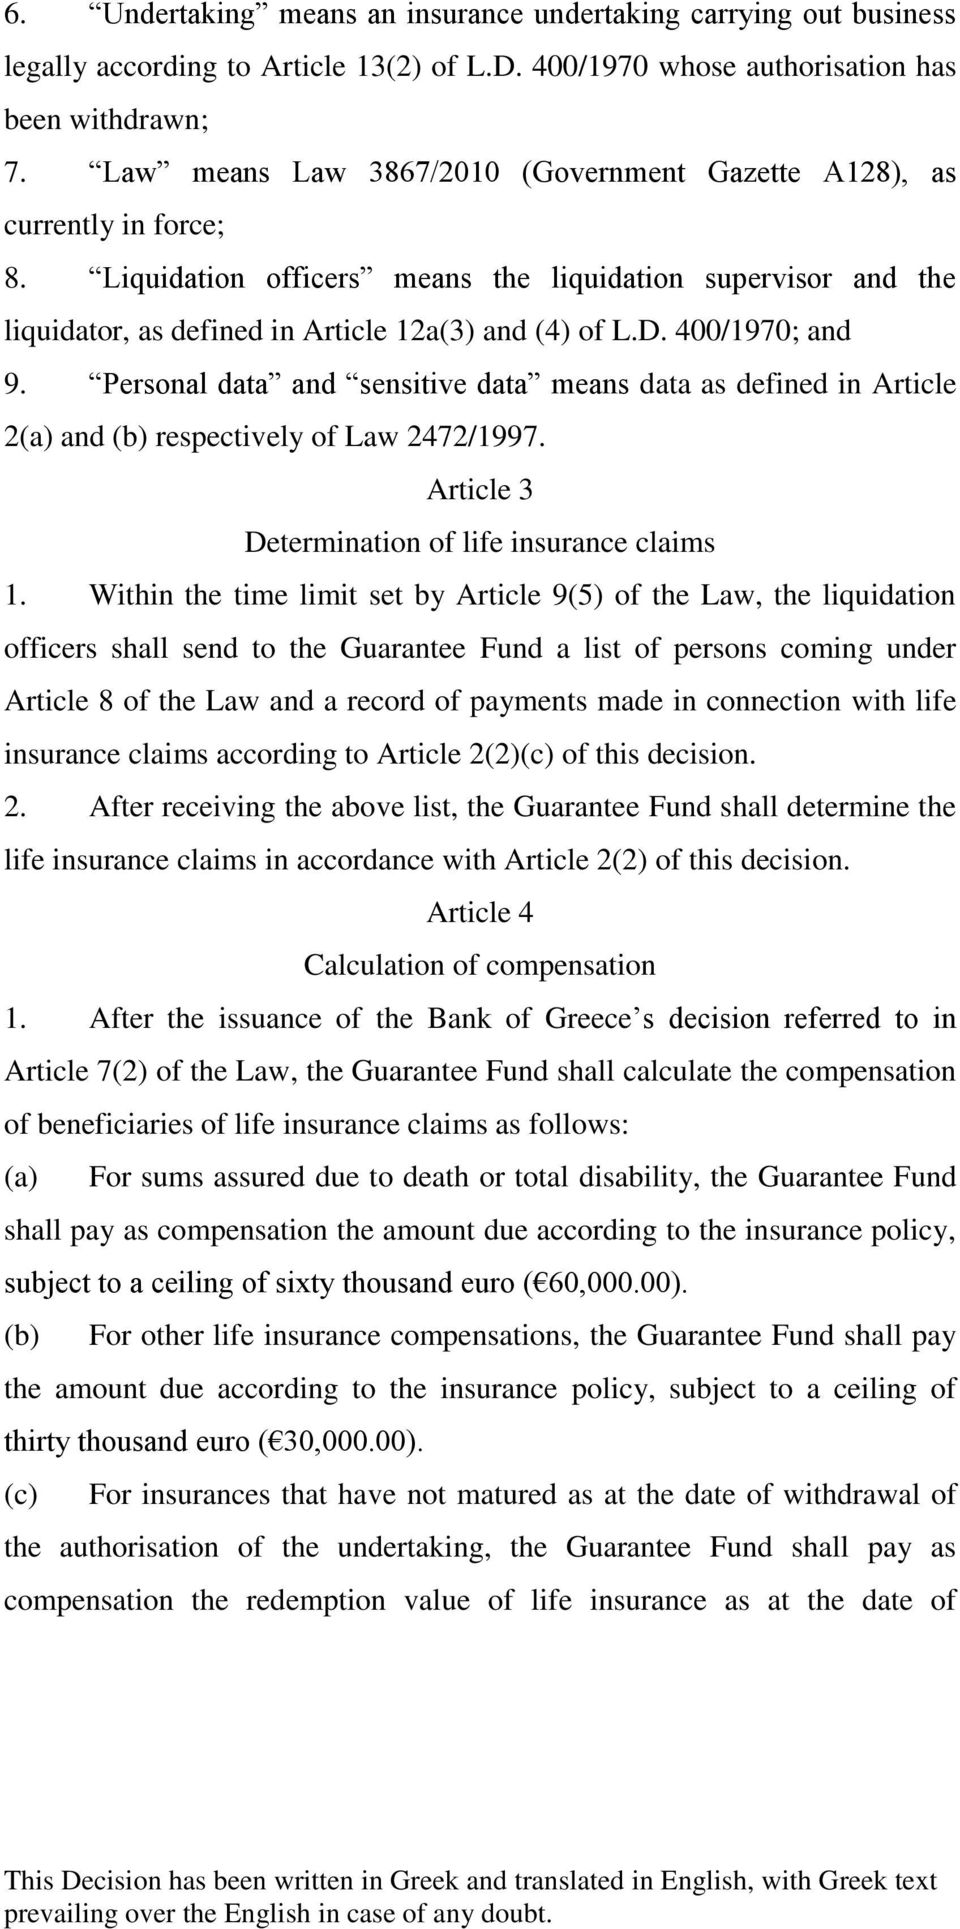 400/1970; and 9. Personal data and sensitive data means data as defined in Article 2(a) and (b) respectively of Law 2472/1997. Article 3 Determination of life insurance claims 1.